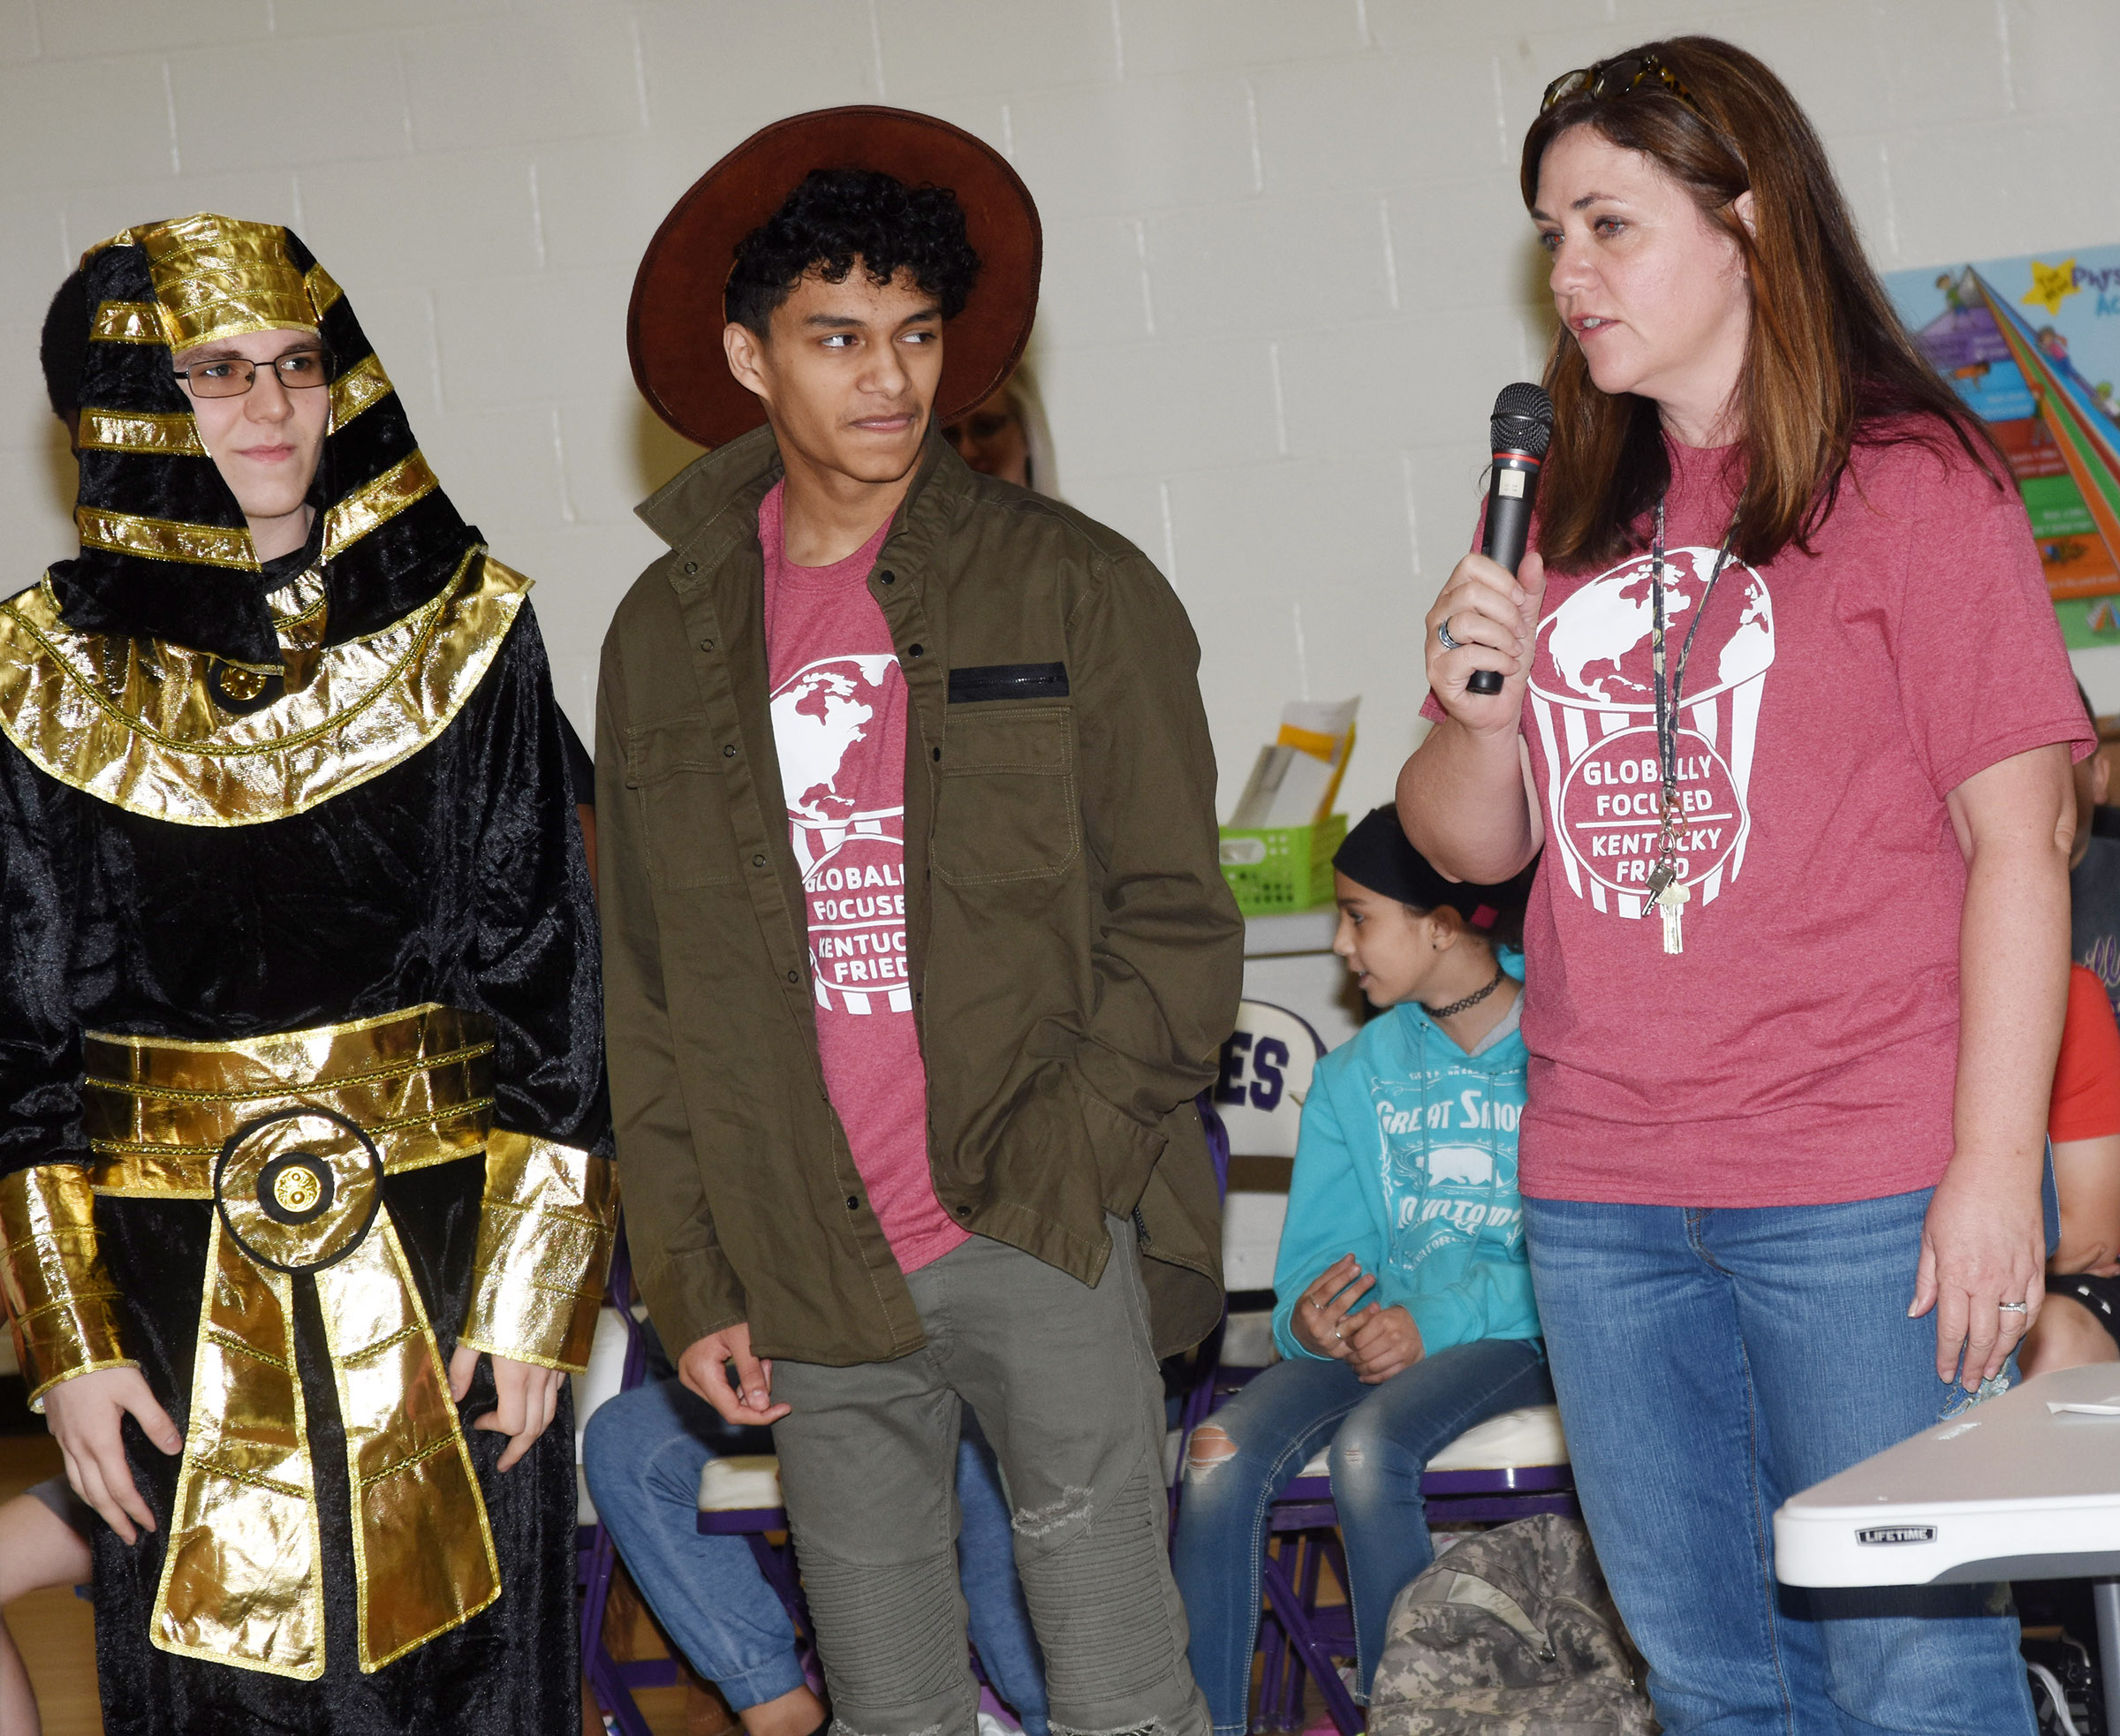 CHS Y-Club sponsor Susan Dabney talks to CES students about her club. At left are junior Brandon Greer and sophomore Ben Arachi, who are dressed in their costumes for their cultural display.